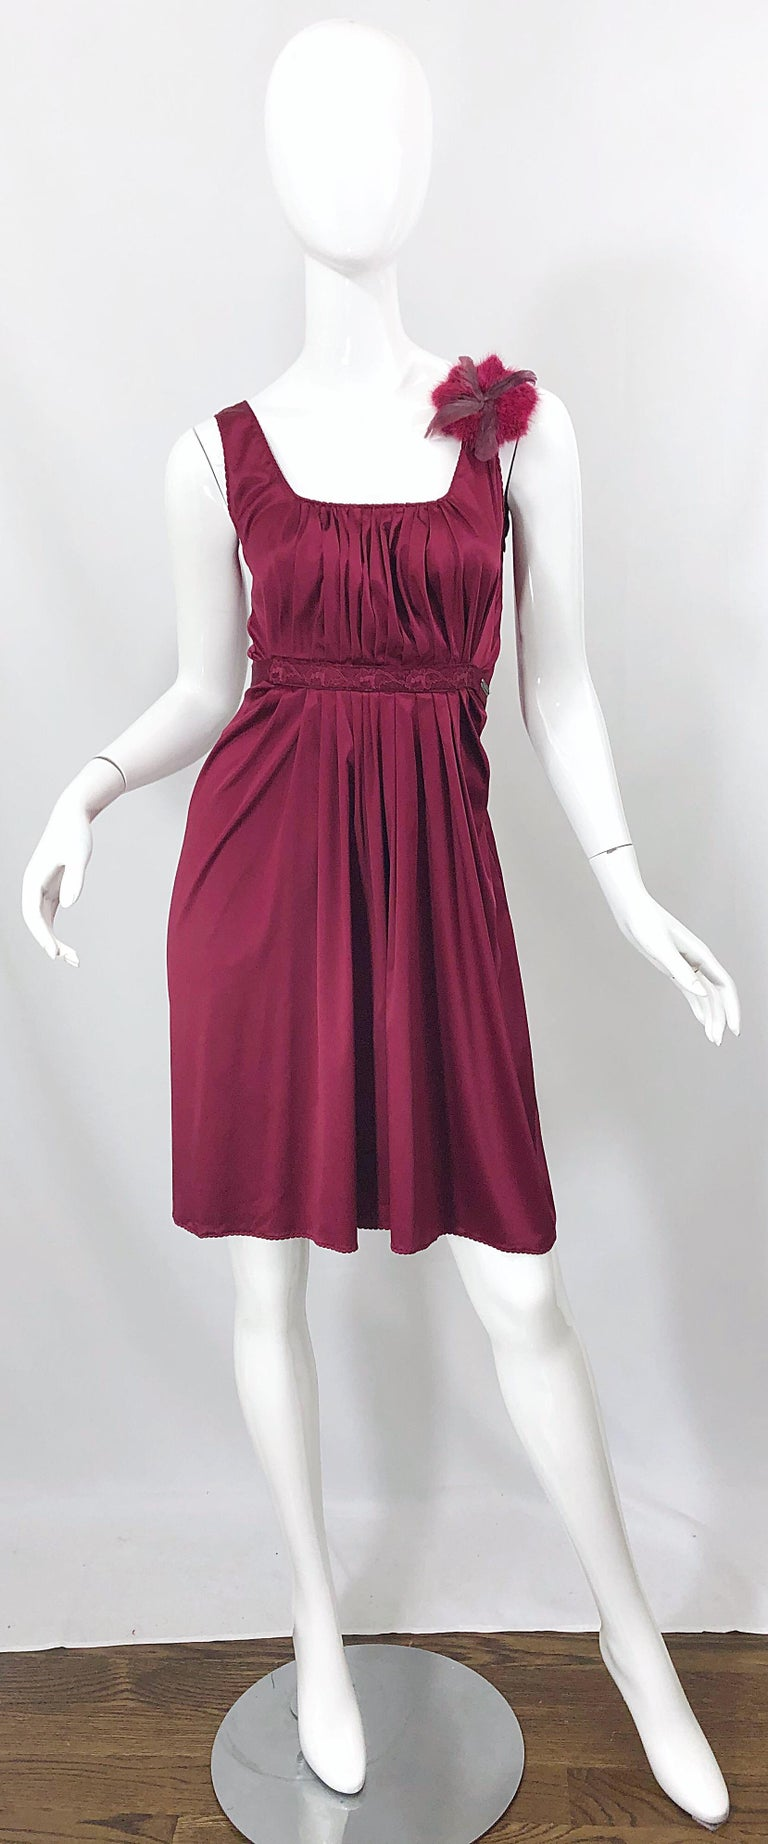 Beautiful early 2000s JOHN GALLIANO burgundy / maroon / merlot silk sleeveless dress with removable feather brooch! Pleated bodice with a tie at back waistband to adjust waist size. Hidden zipper up the side with hook-and-eye closure. Feather brooch